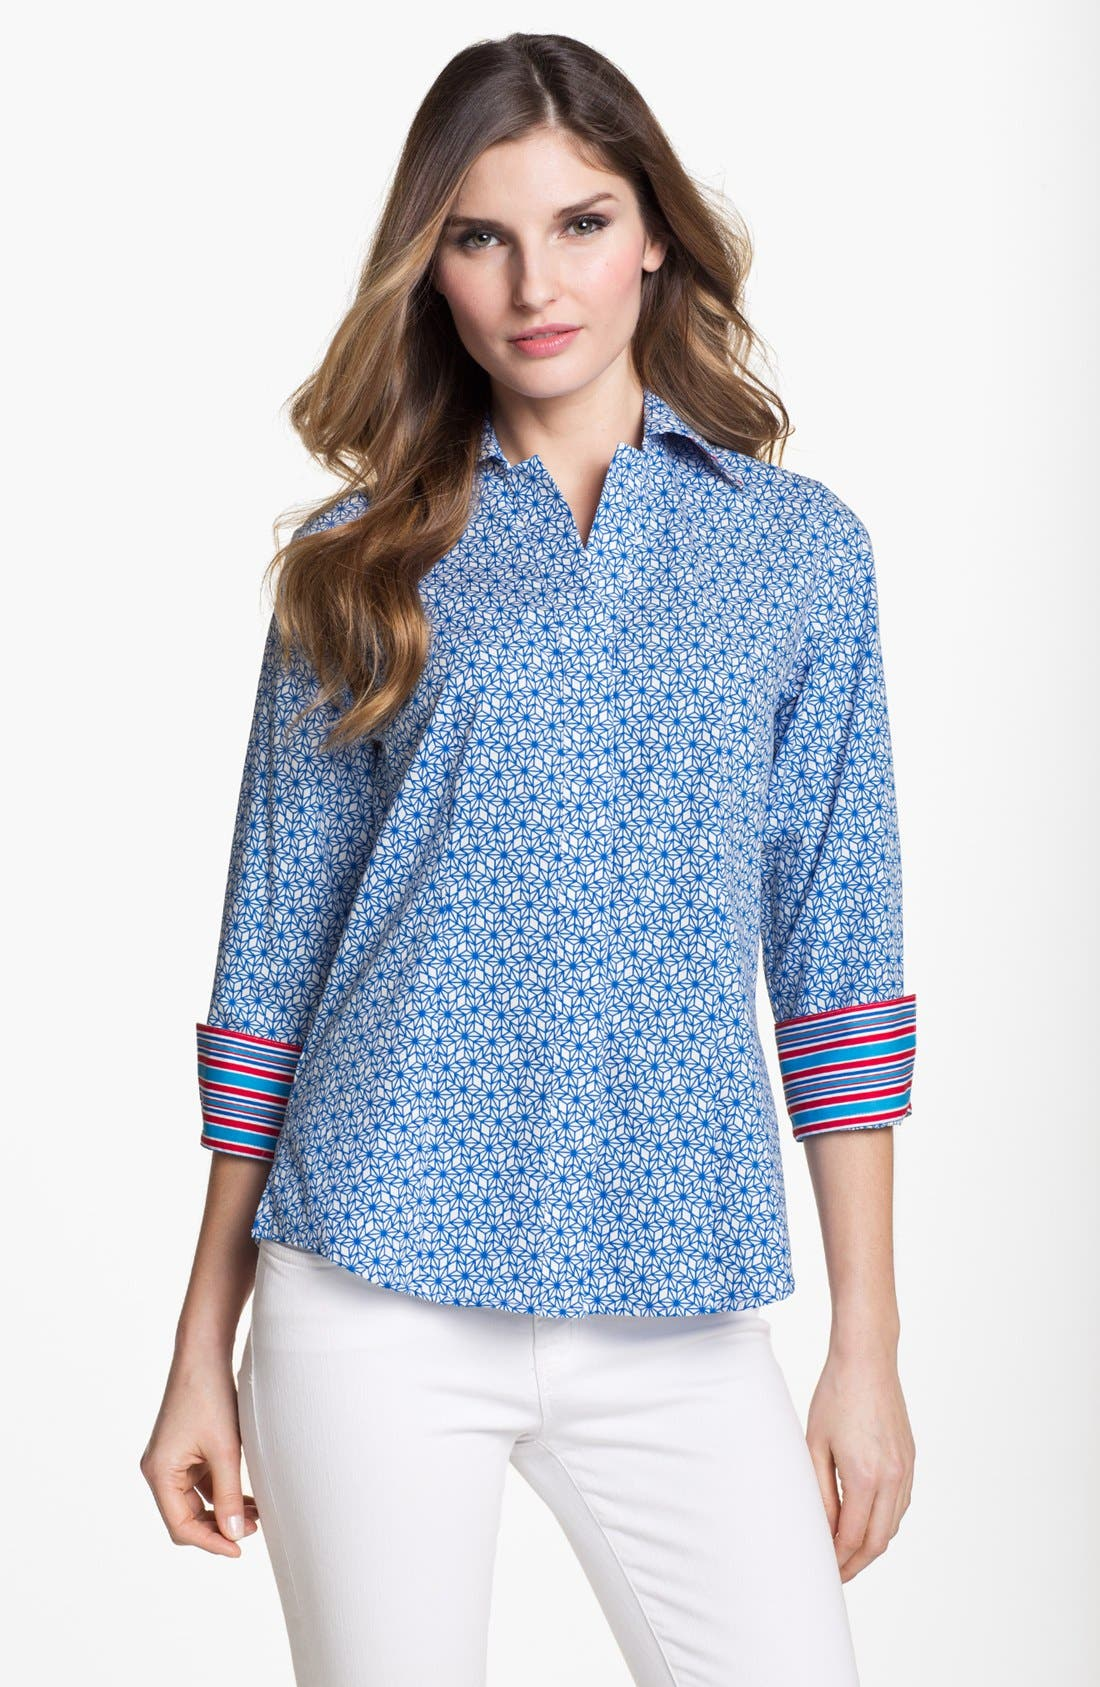 Main Image - Foxcroft 'Stars and Stripes' Shaped Shirt